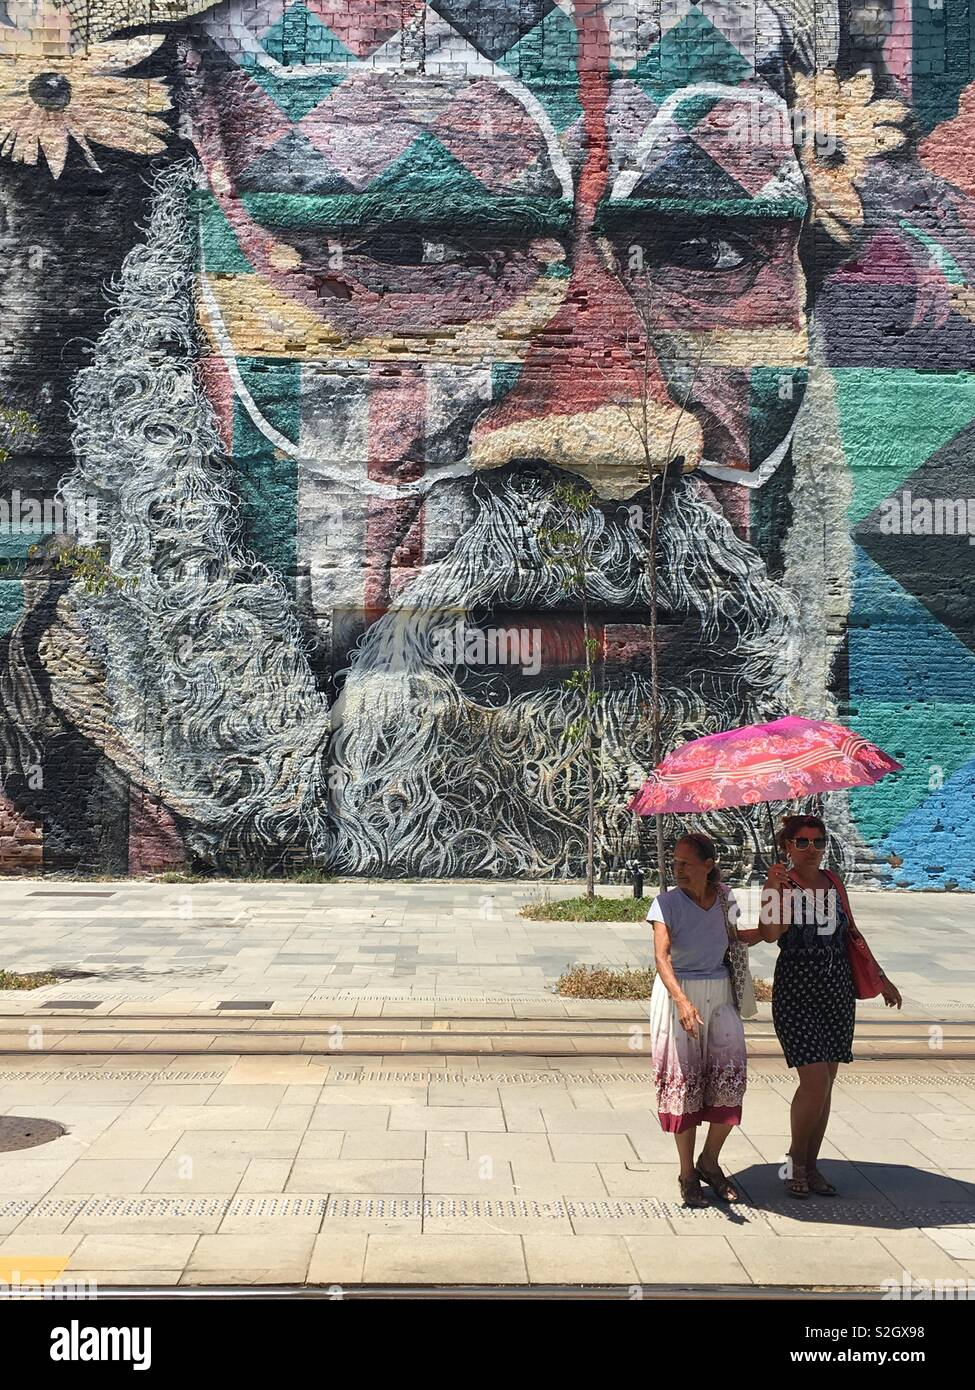 Largest street art mural in the world in Rio. - Stock Image